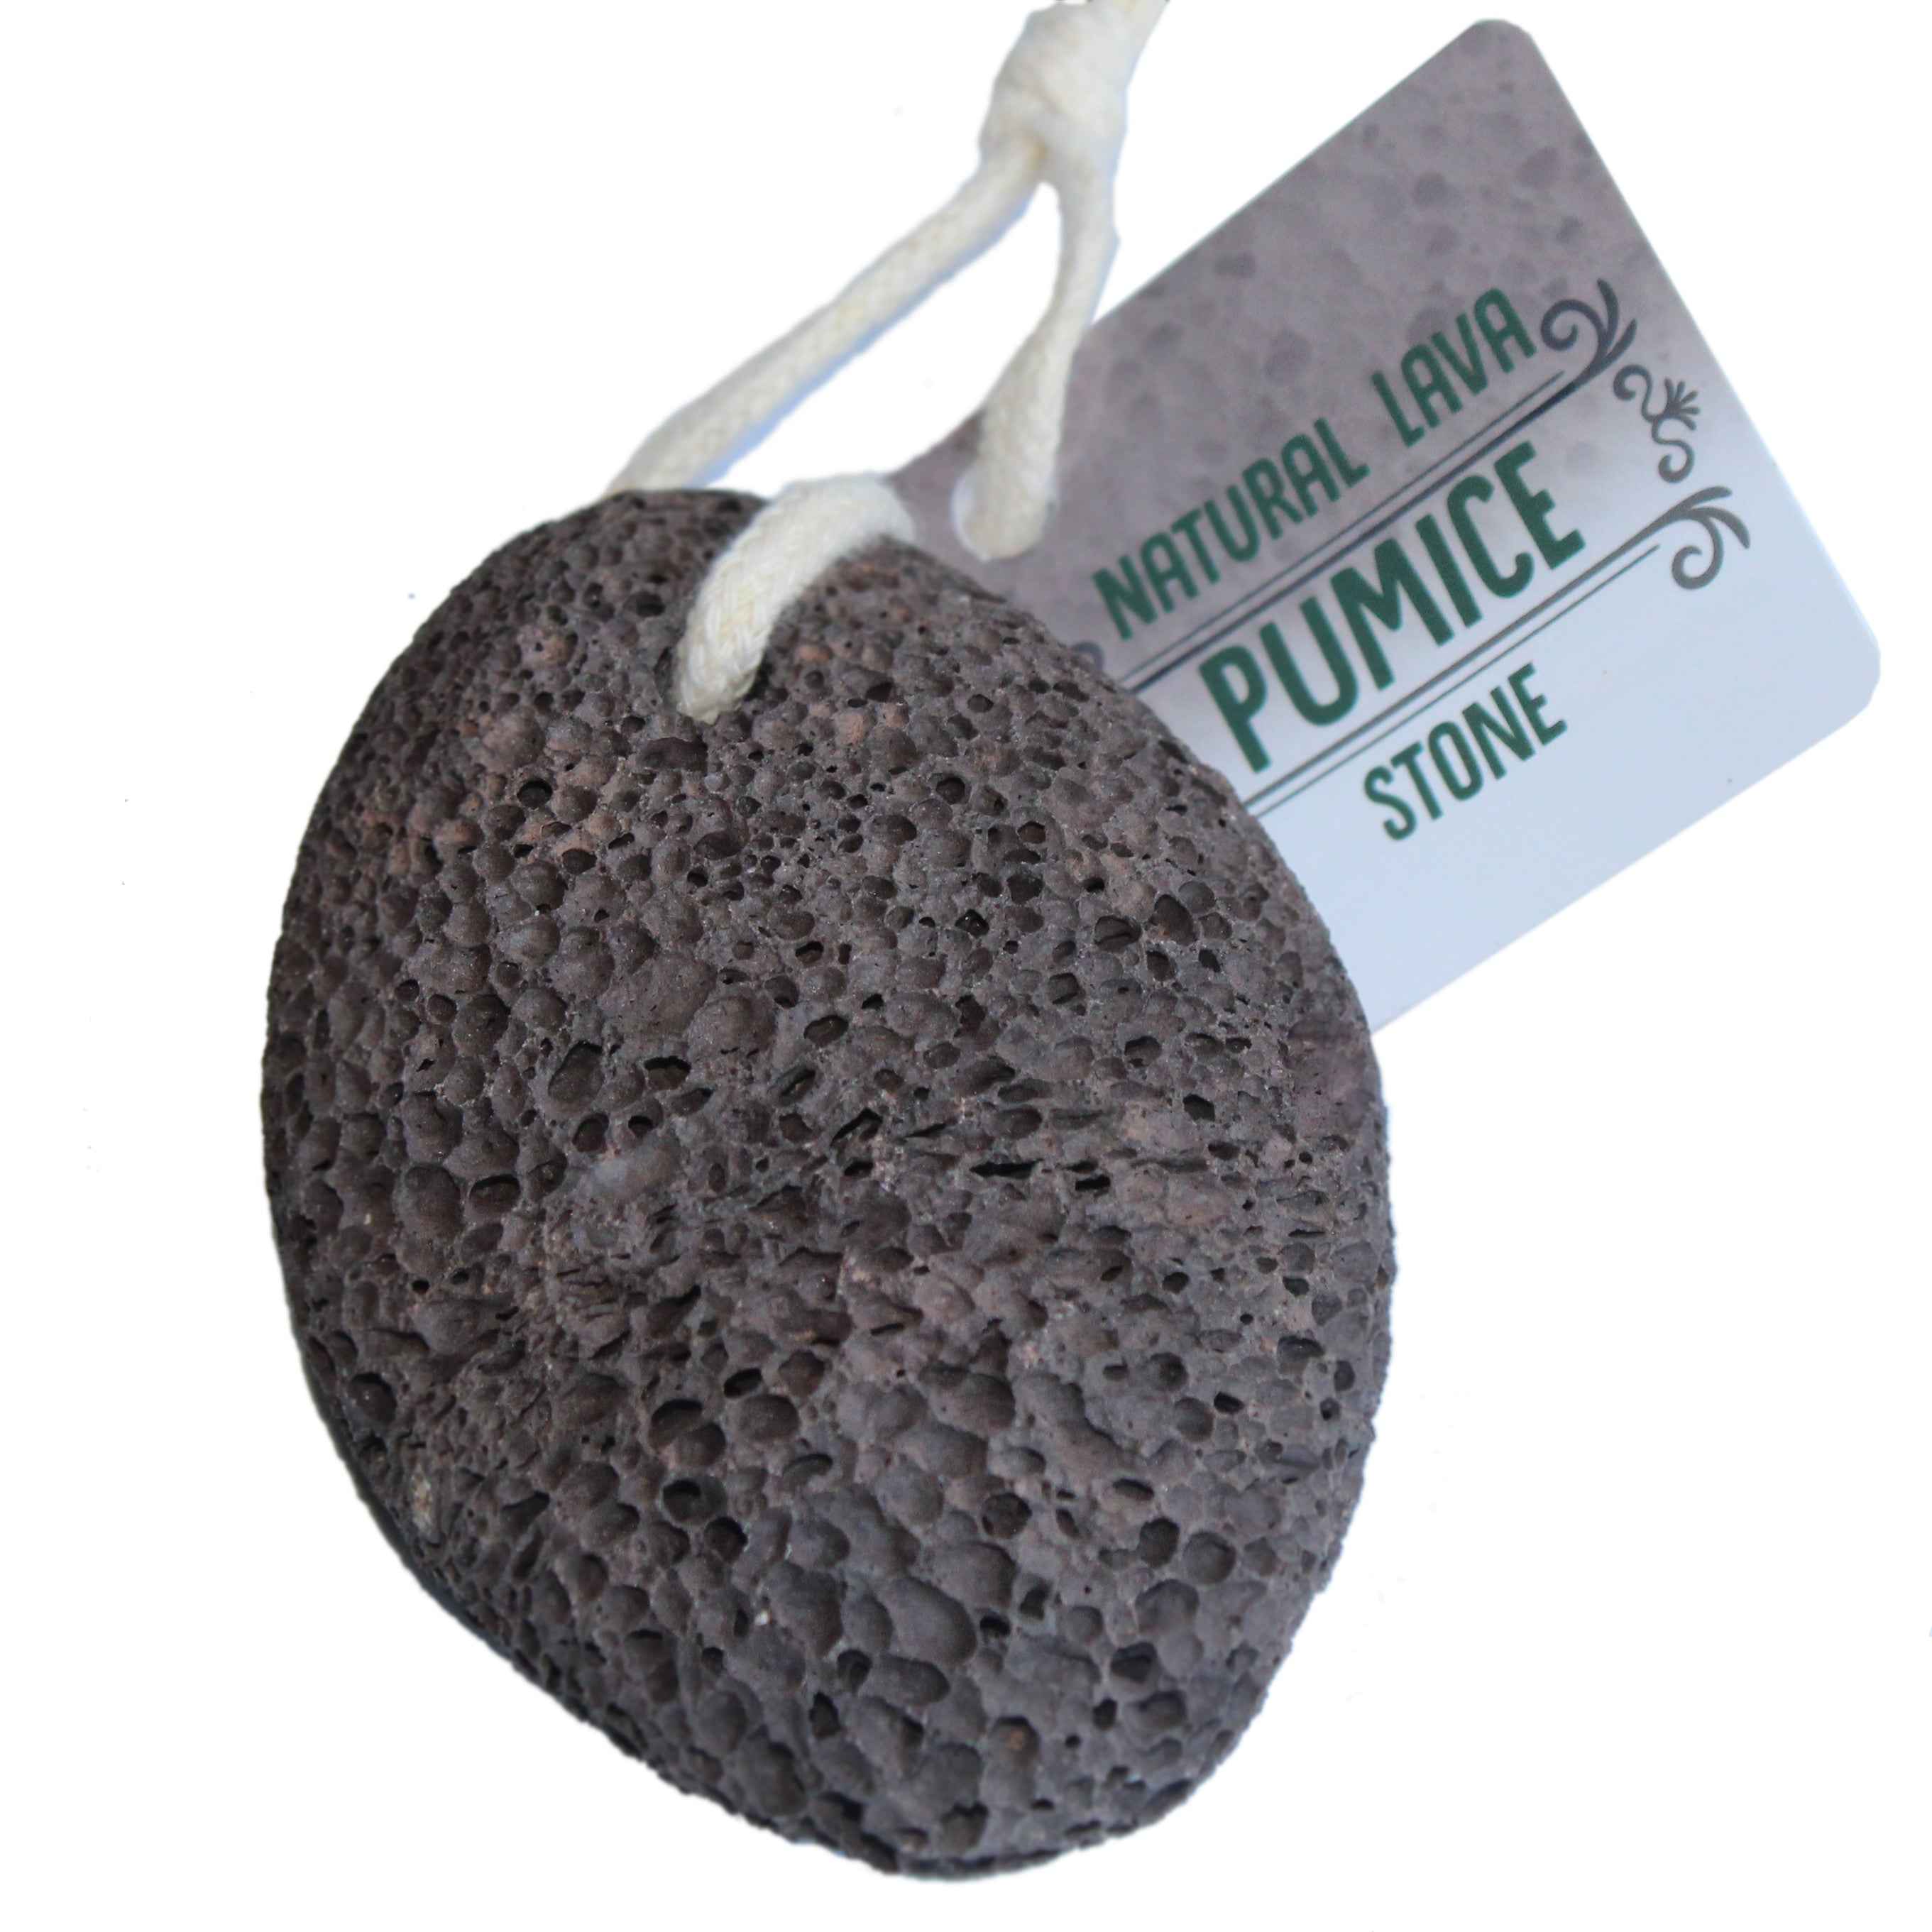 Pumice Stone for feet and foot scrubber-Ideal exfoliating Feet scrub dead skin removal pummus pumace pumis piedra - Lava stones callus removal